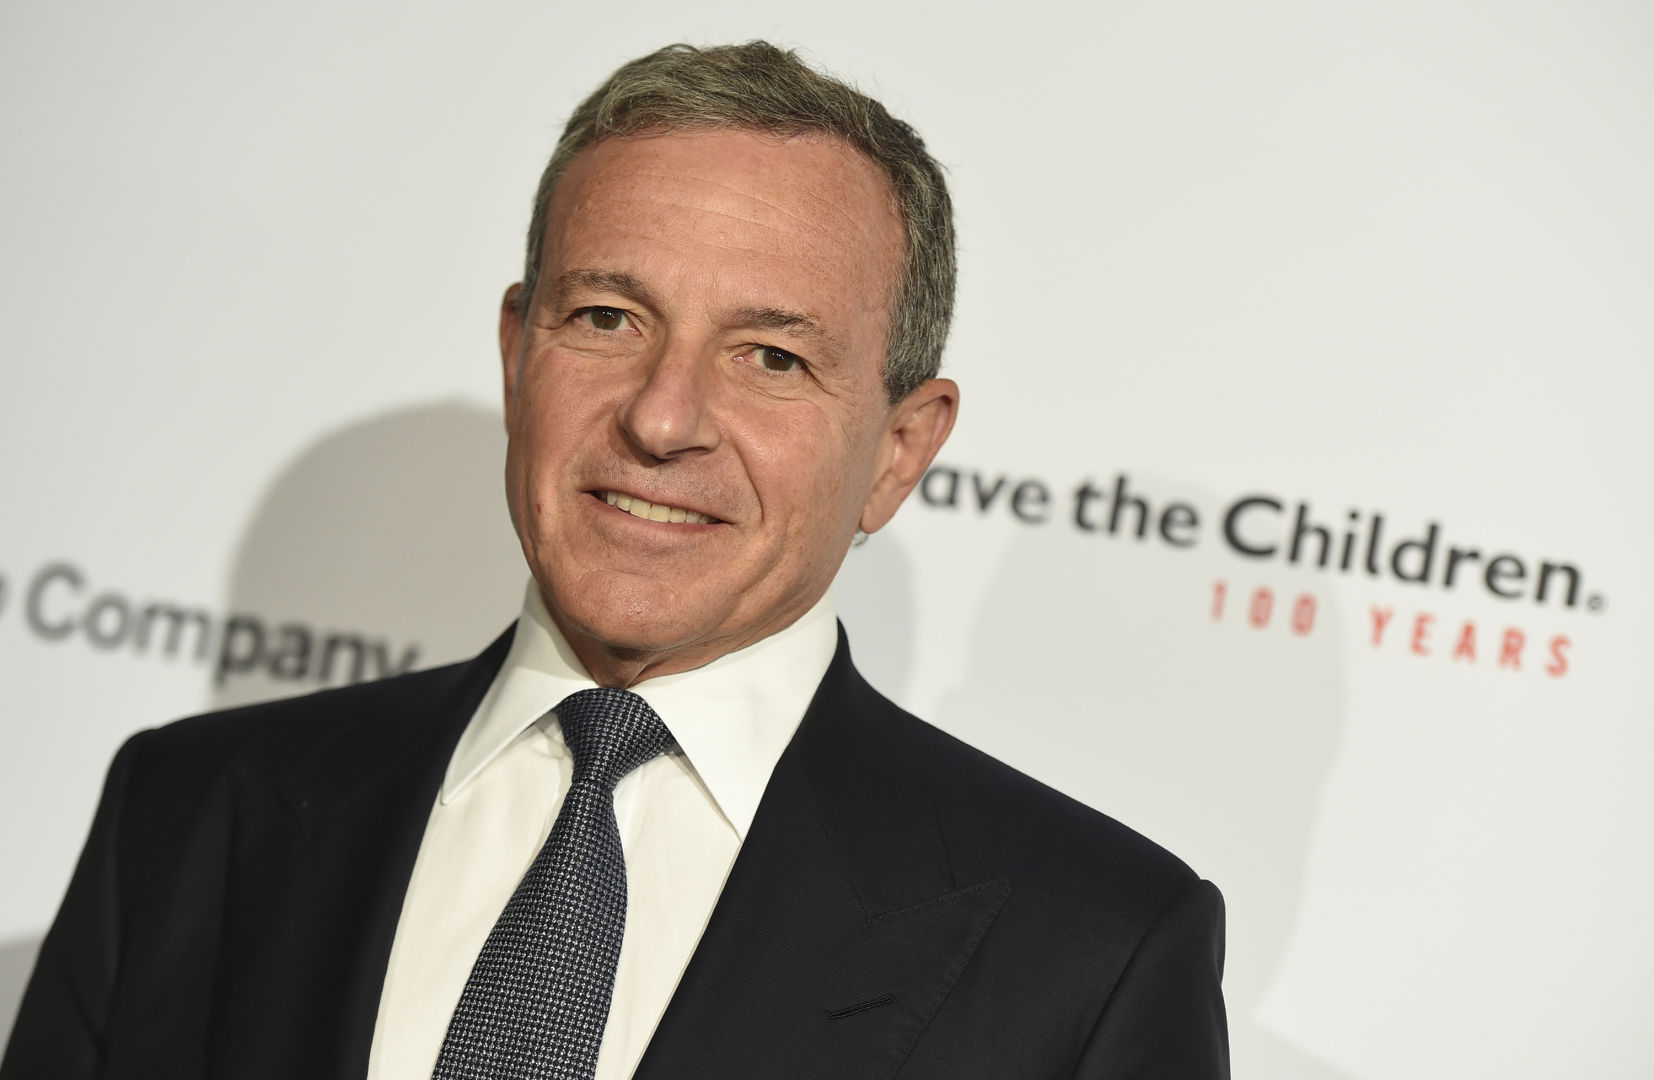 Time names Bob Iger businessperson of the year, citing Disney's newest intellectual property: Baby Yoda